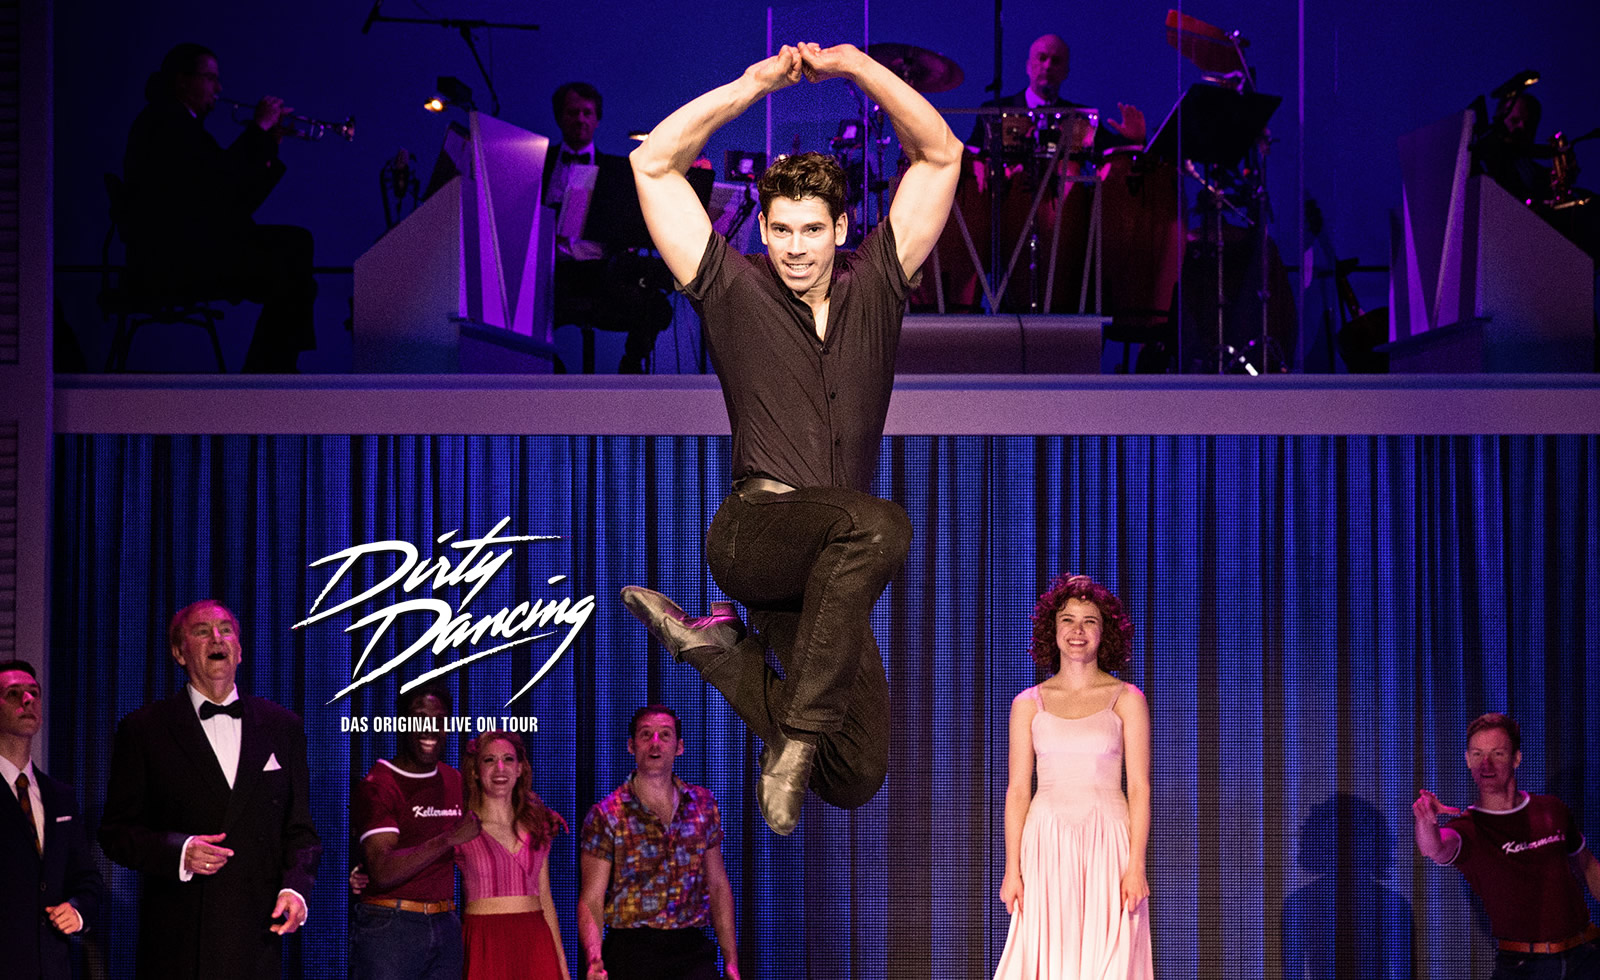 dirty dancing 4 days ago  eventbrite - the brookyn mirage presents mirage cinema presents: dirty  dancing - wednesday, september 5, 2018 at the brooklyn mirage,.